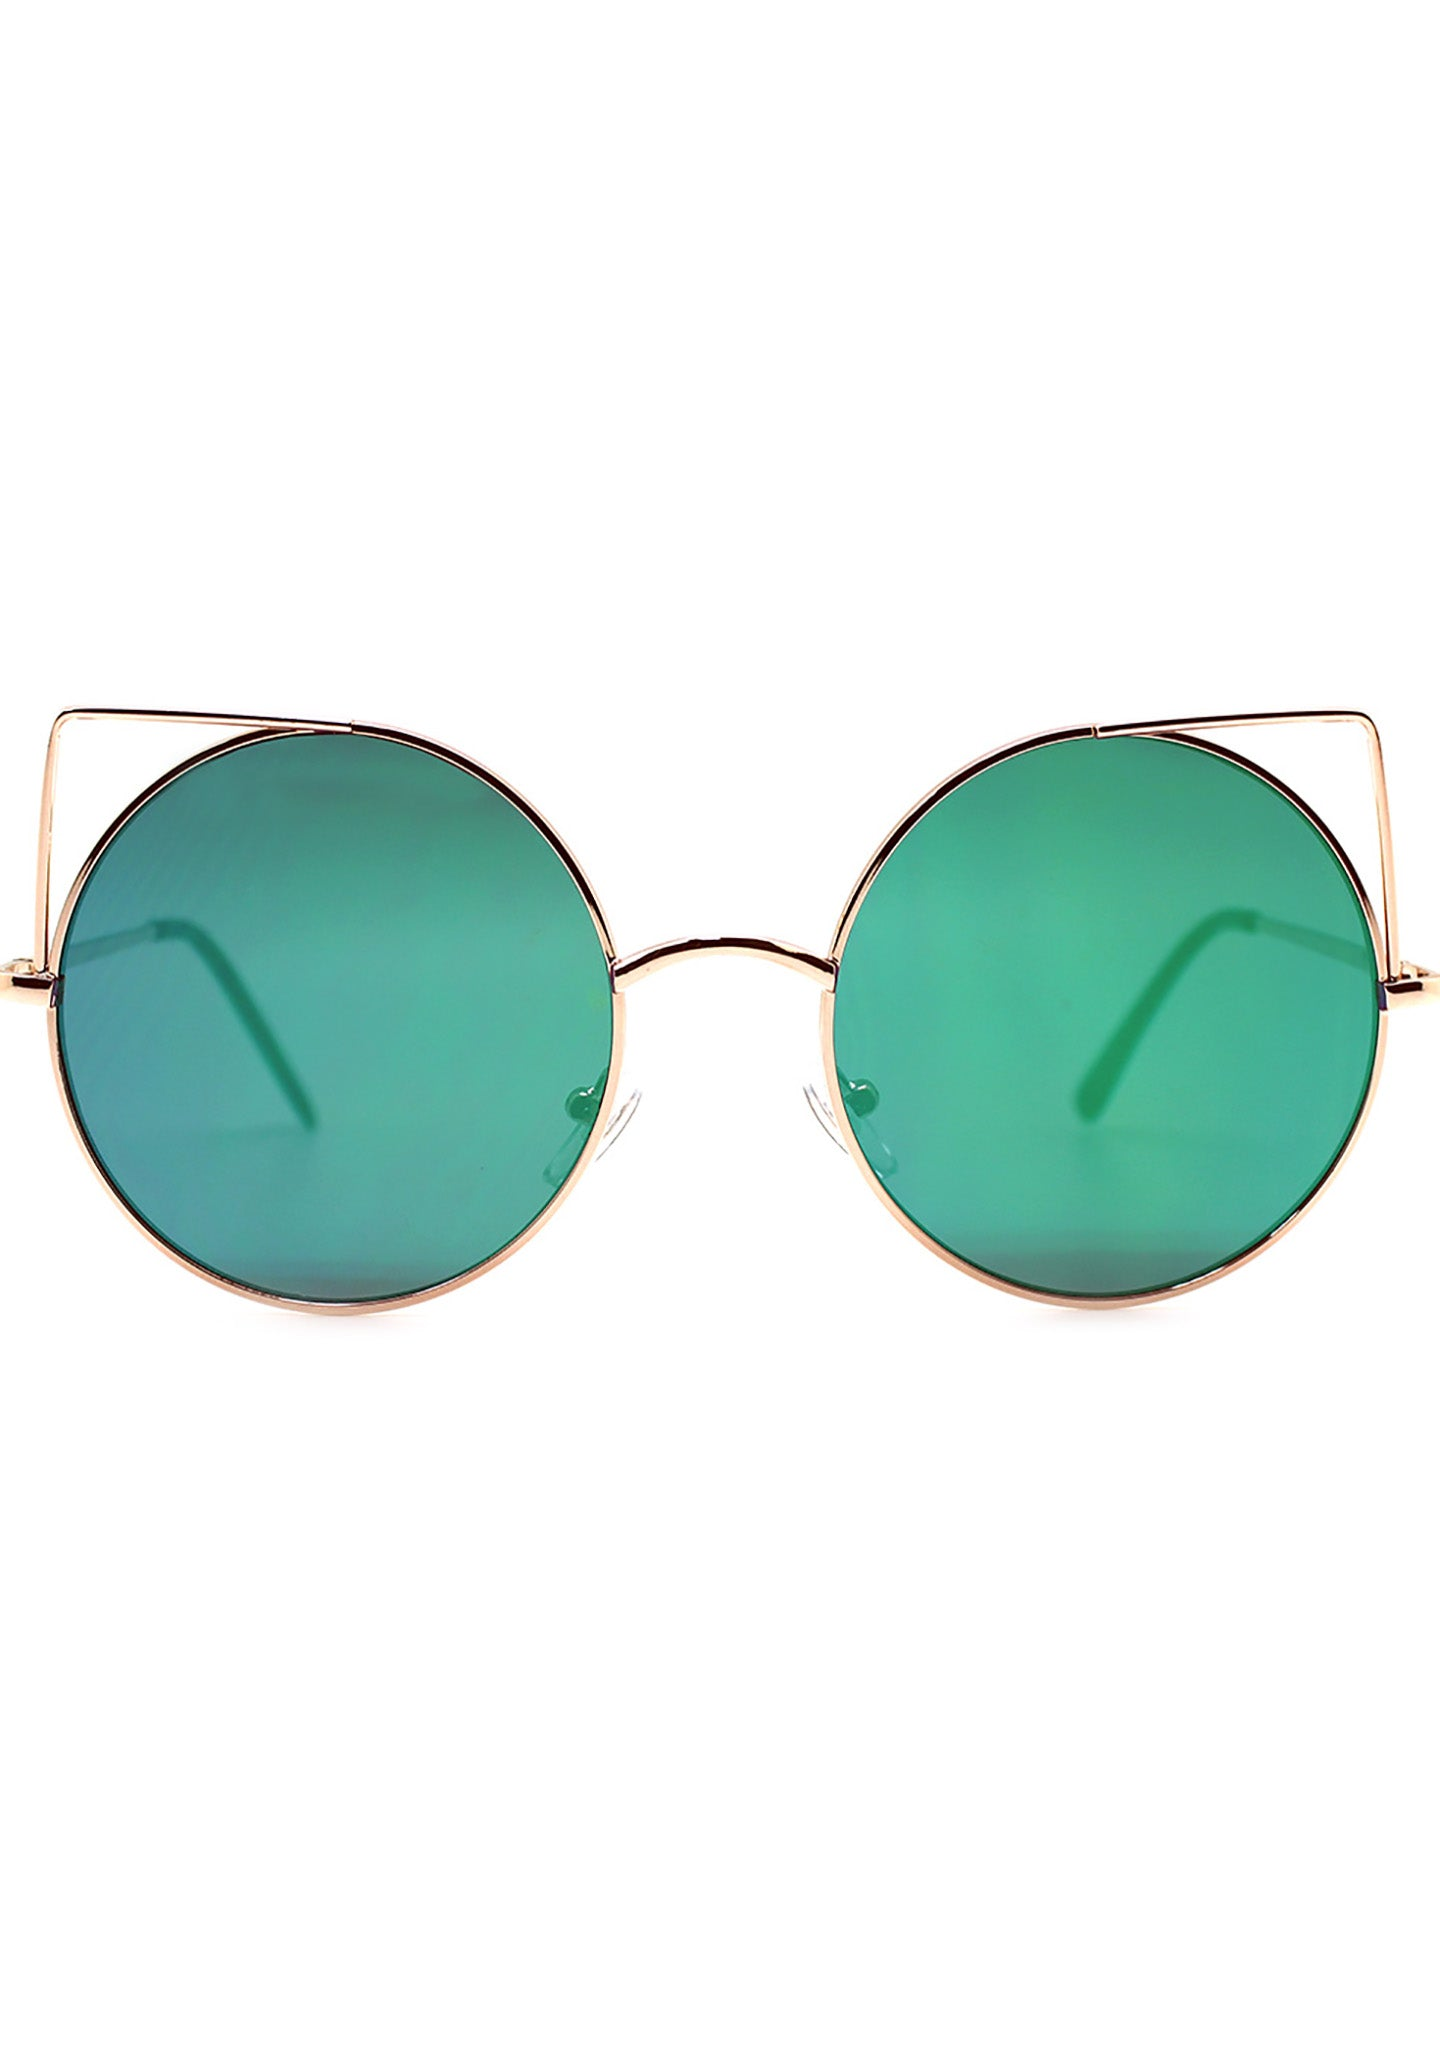 7 LUXE Bite Me Sunglasses